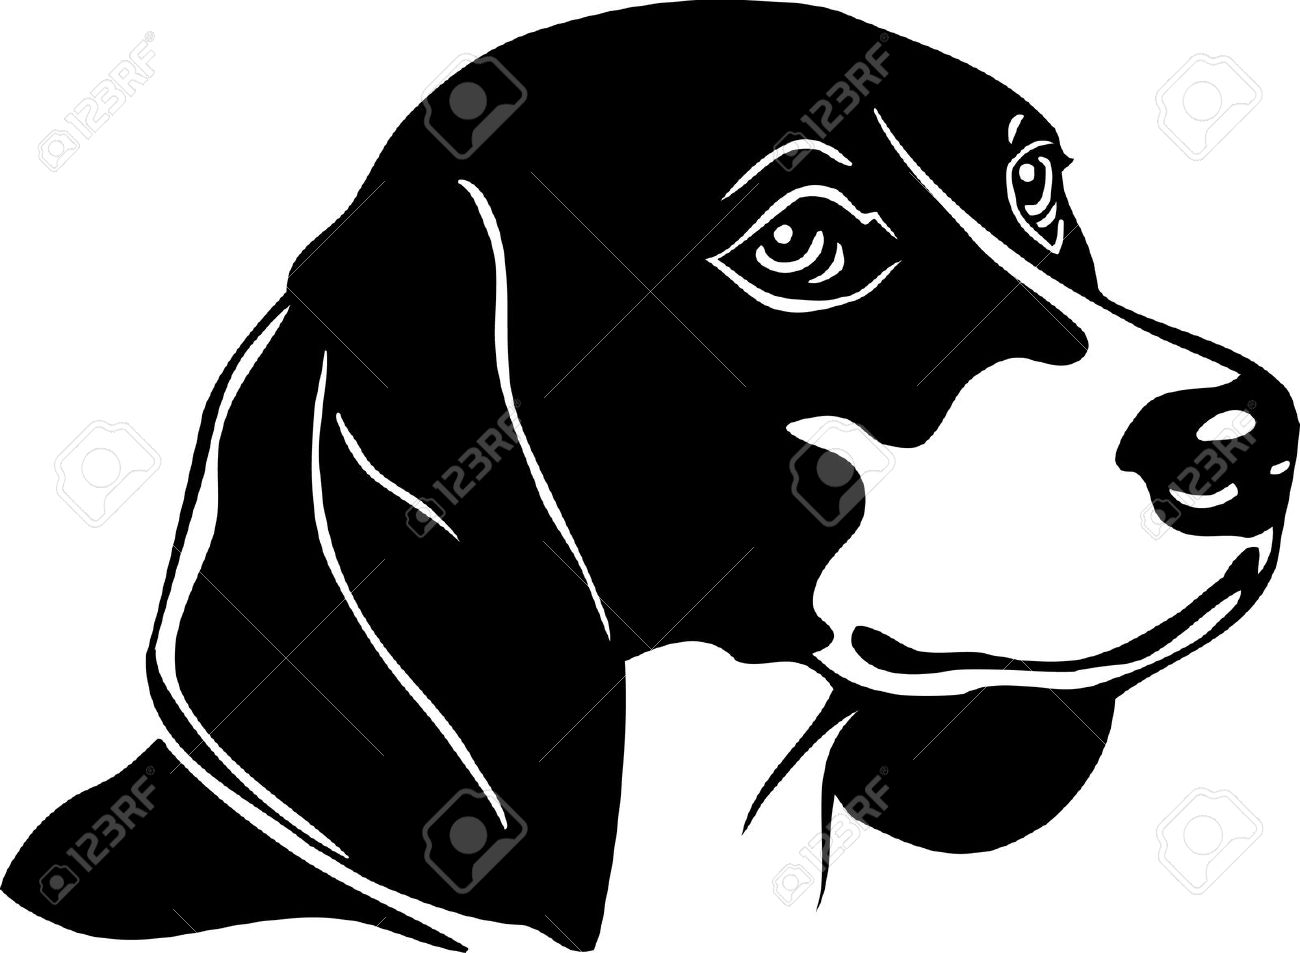 Free Beagle Clipart Black And White, Download Free Clip Art.